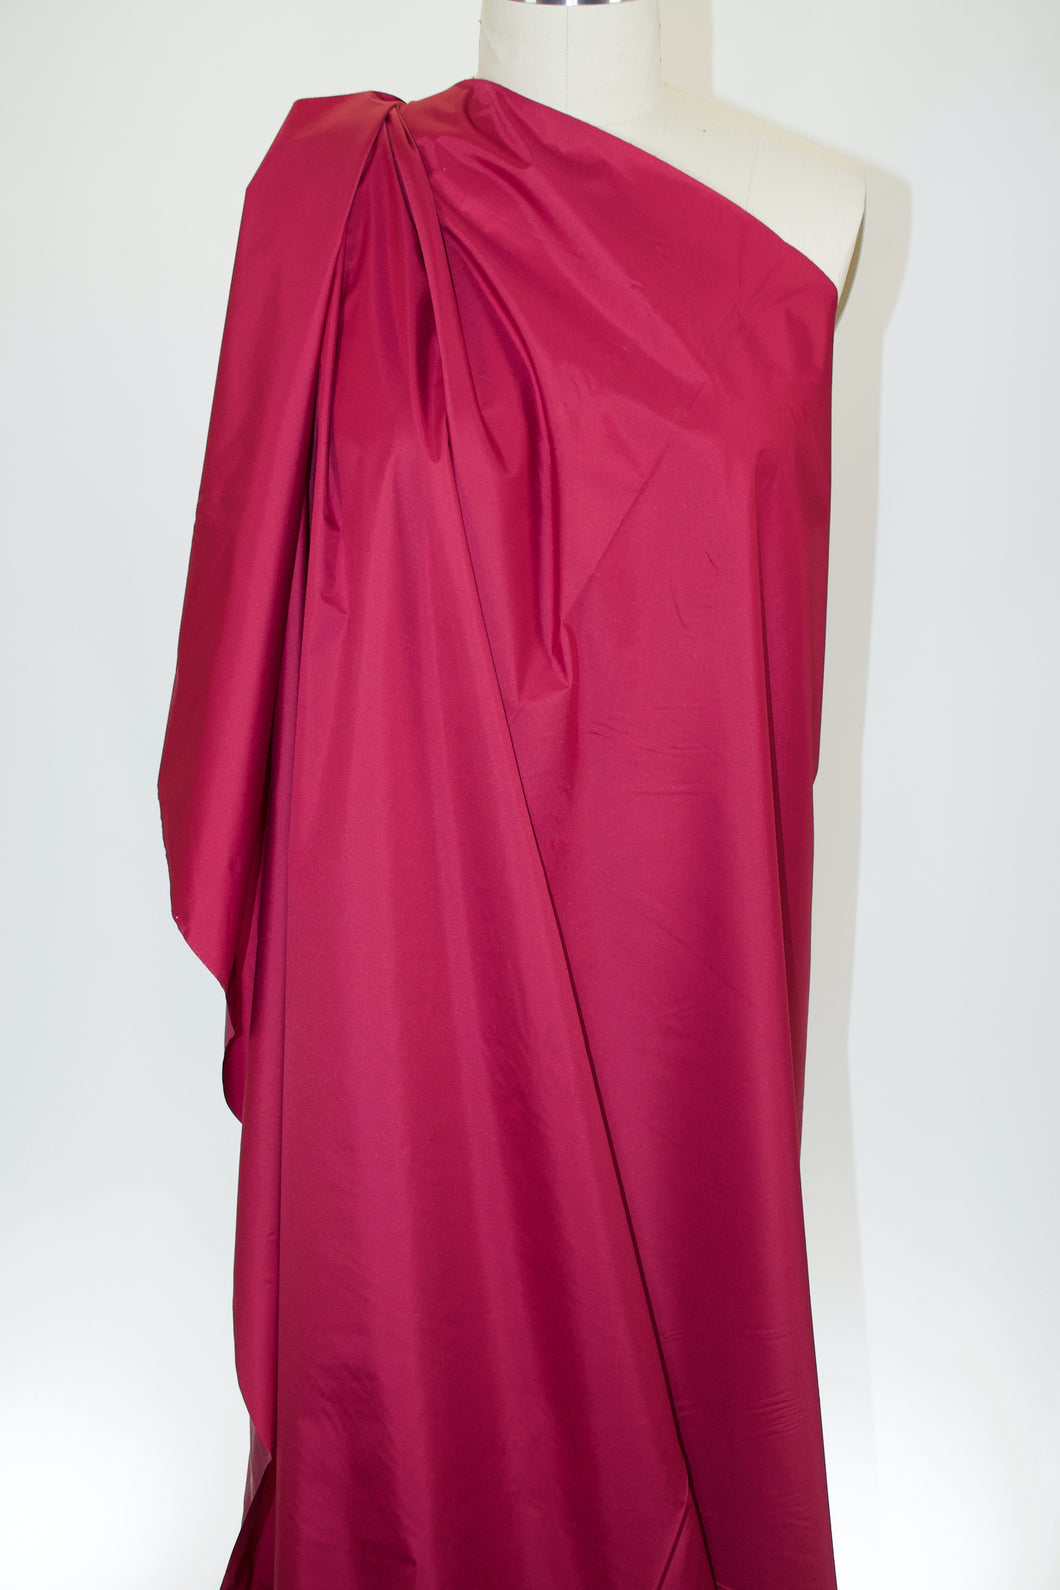 Stylin' in the Storm NY Designer Coated Satin - Burgundy